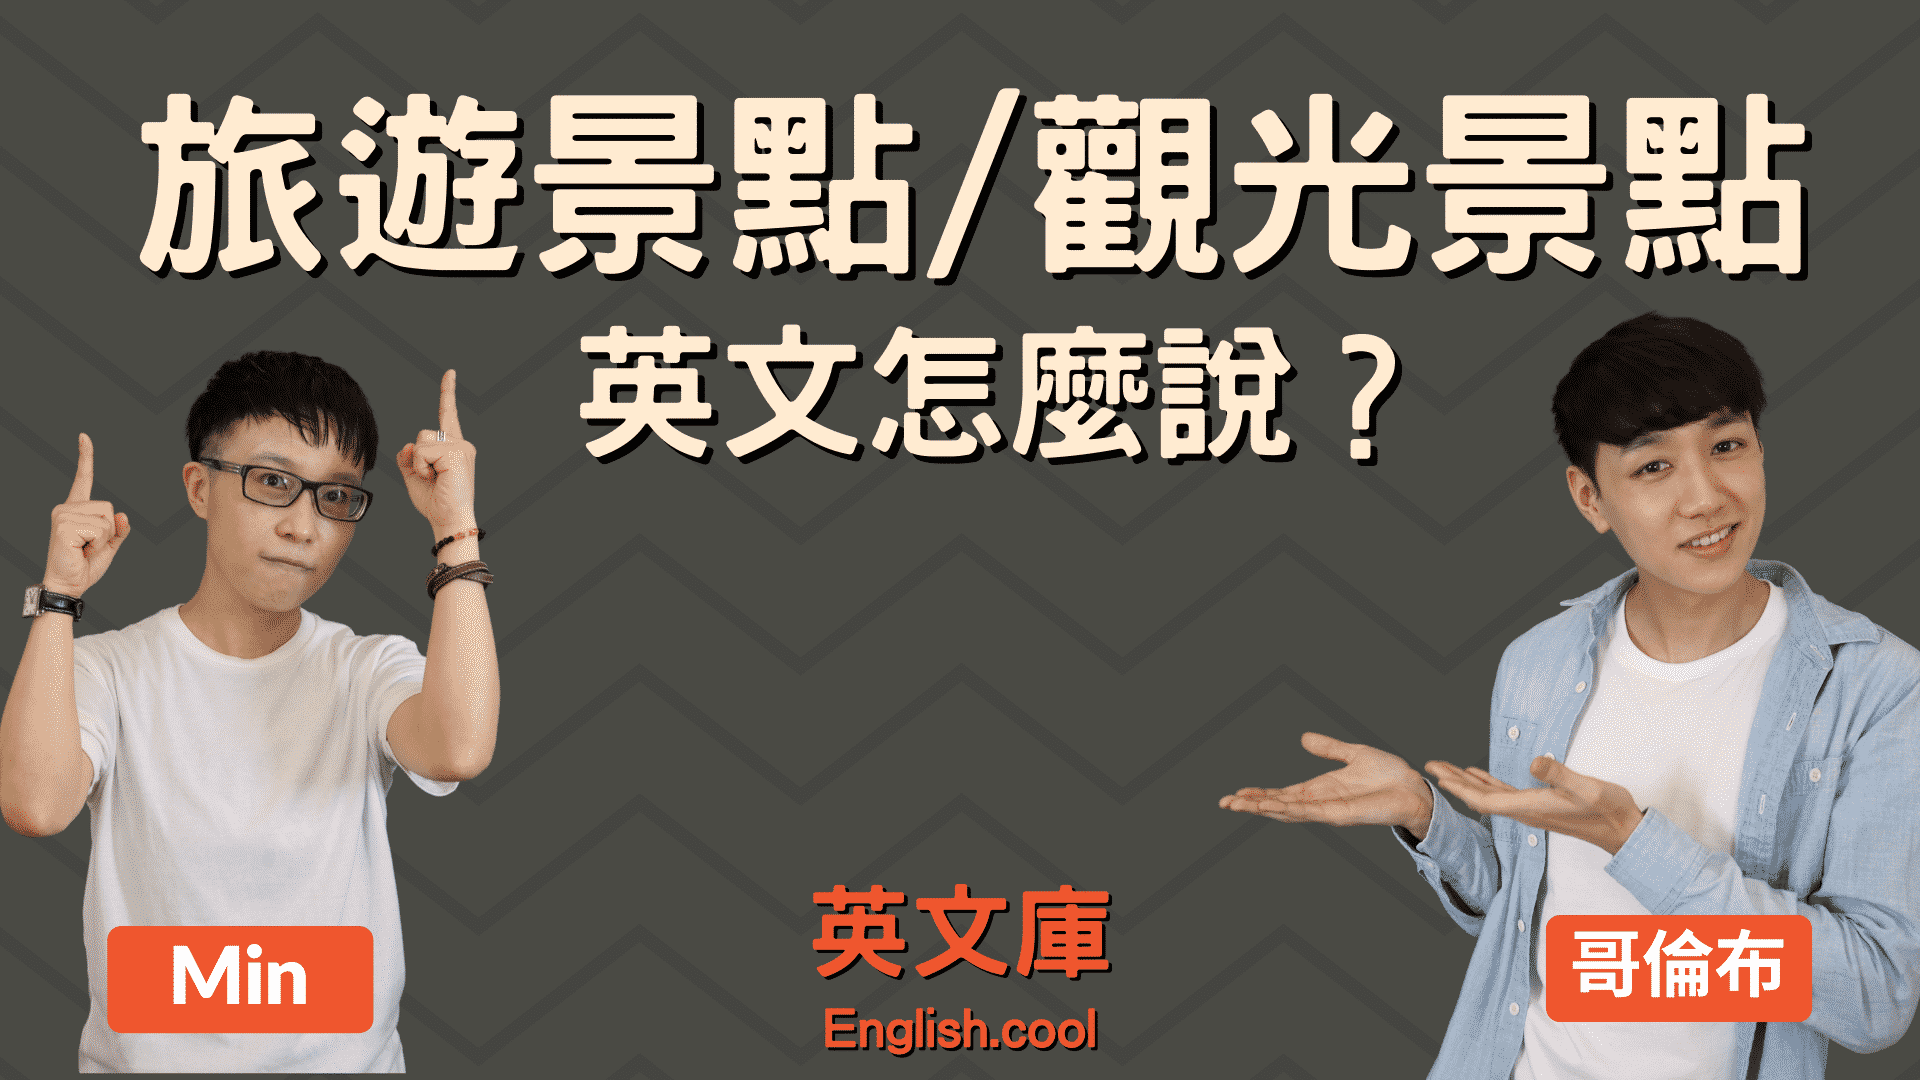 You are currently viewing 「旅遊景點、觀光景點」英文是?attractions? tourist spots?